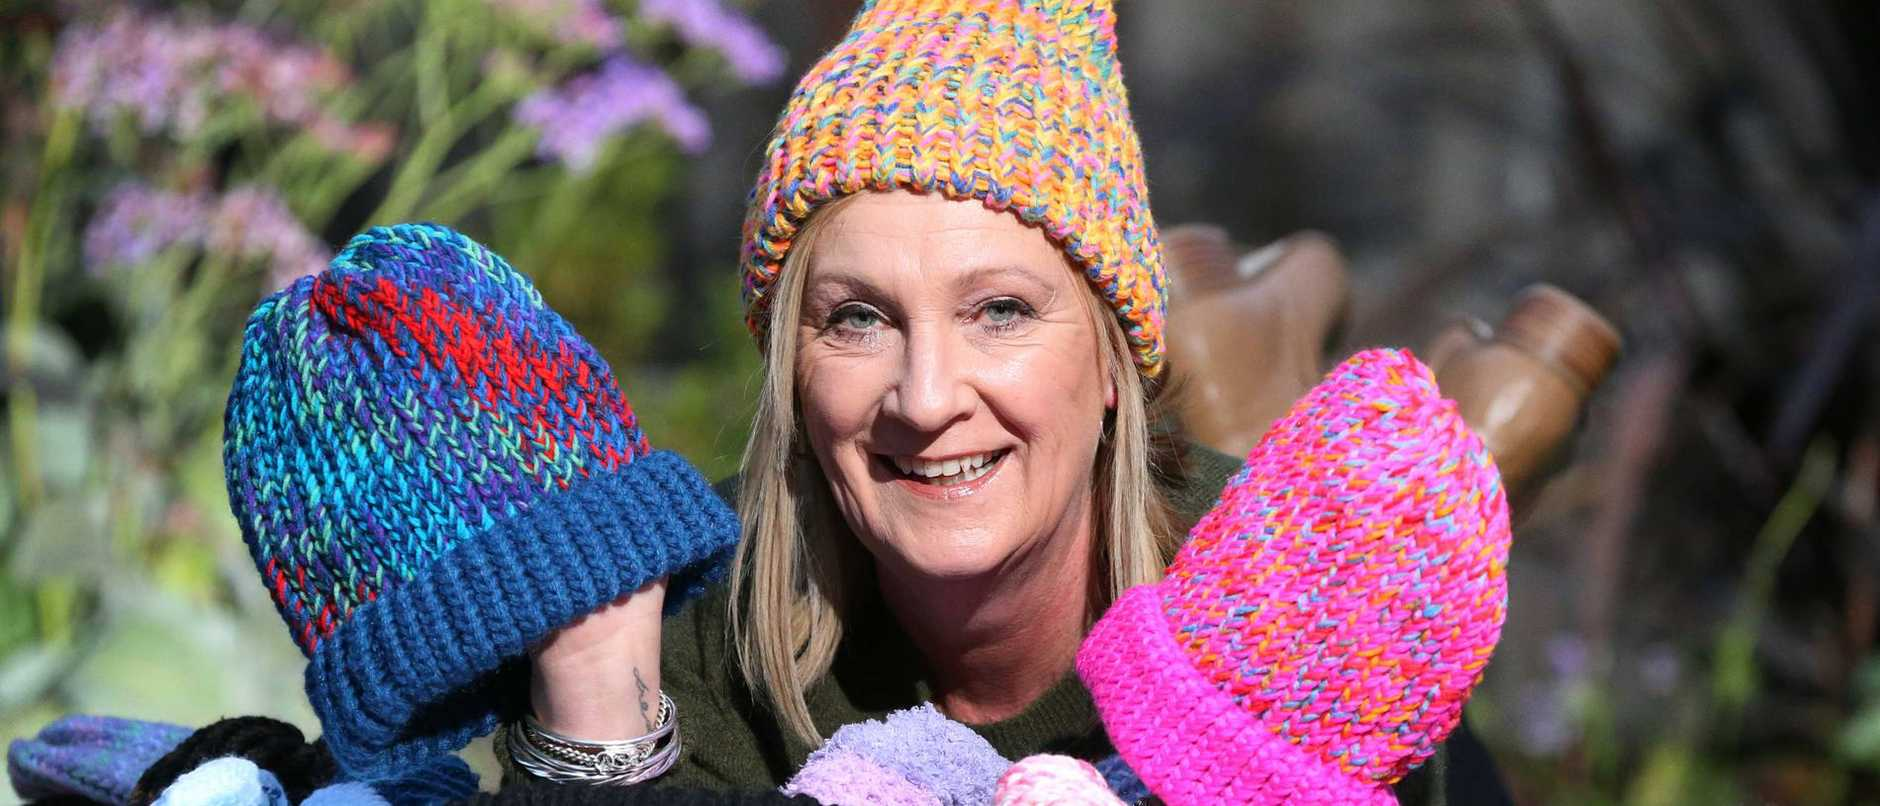 For months Cindy Keay and her friends have been knitting hundreds of warm, woolly hats to help homeless people survive the bitter winter.